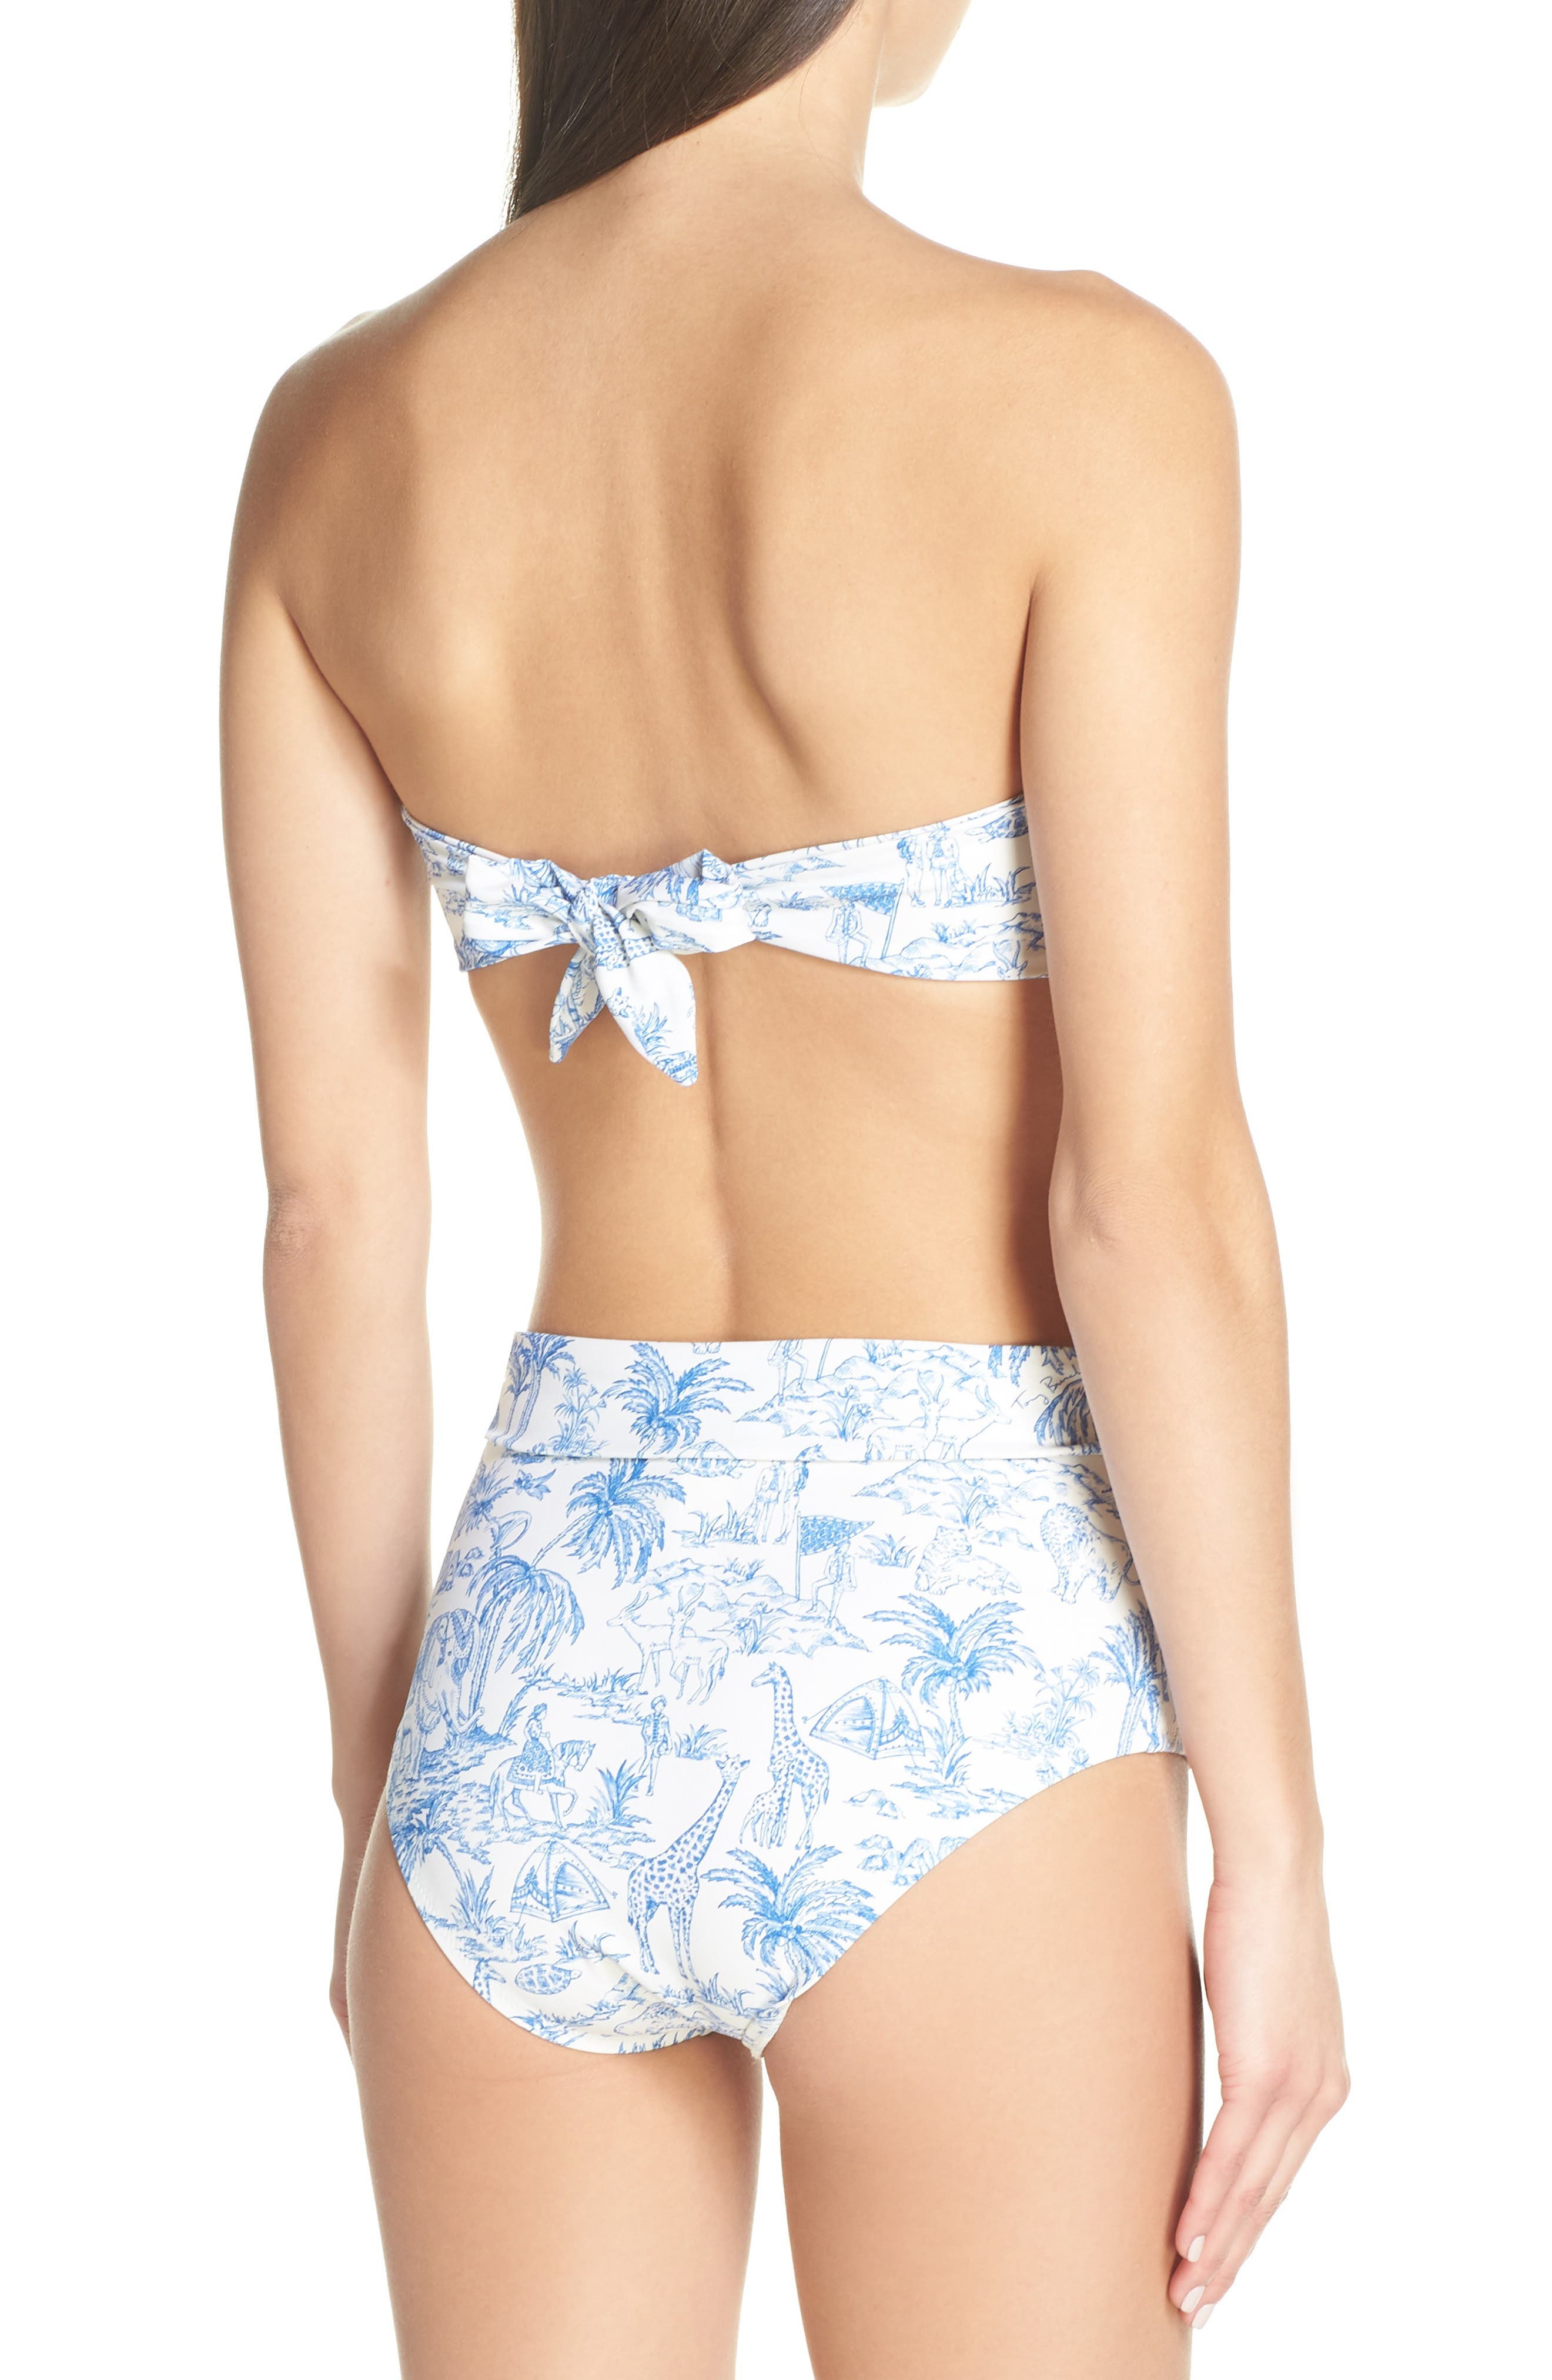 TORY BURCH,                             Sash Tie High Waist Bikini Bottoms,                             Alternate thumbnail 8, color,                             IVORY FAR AND AWAY